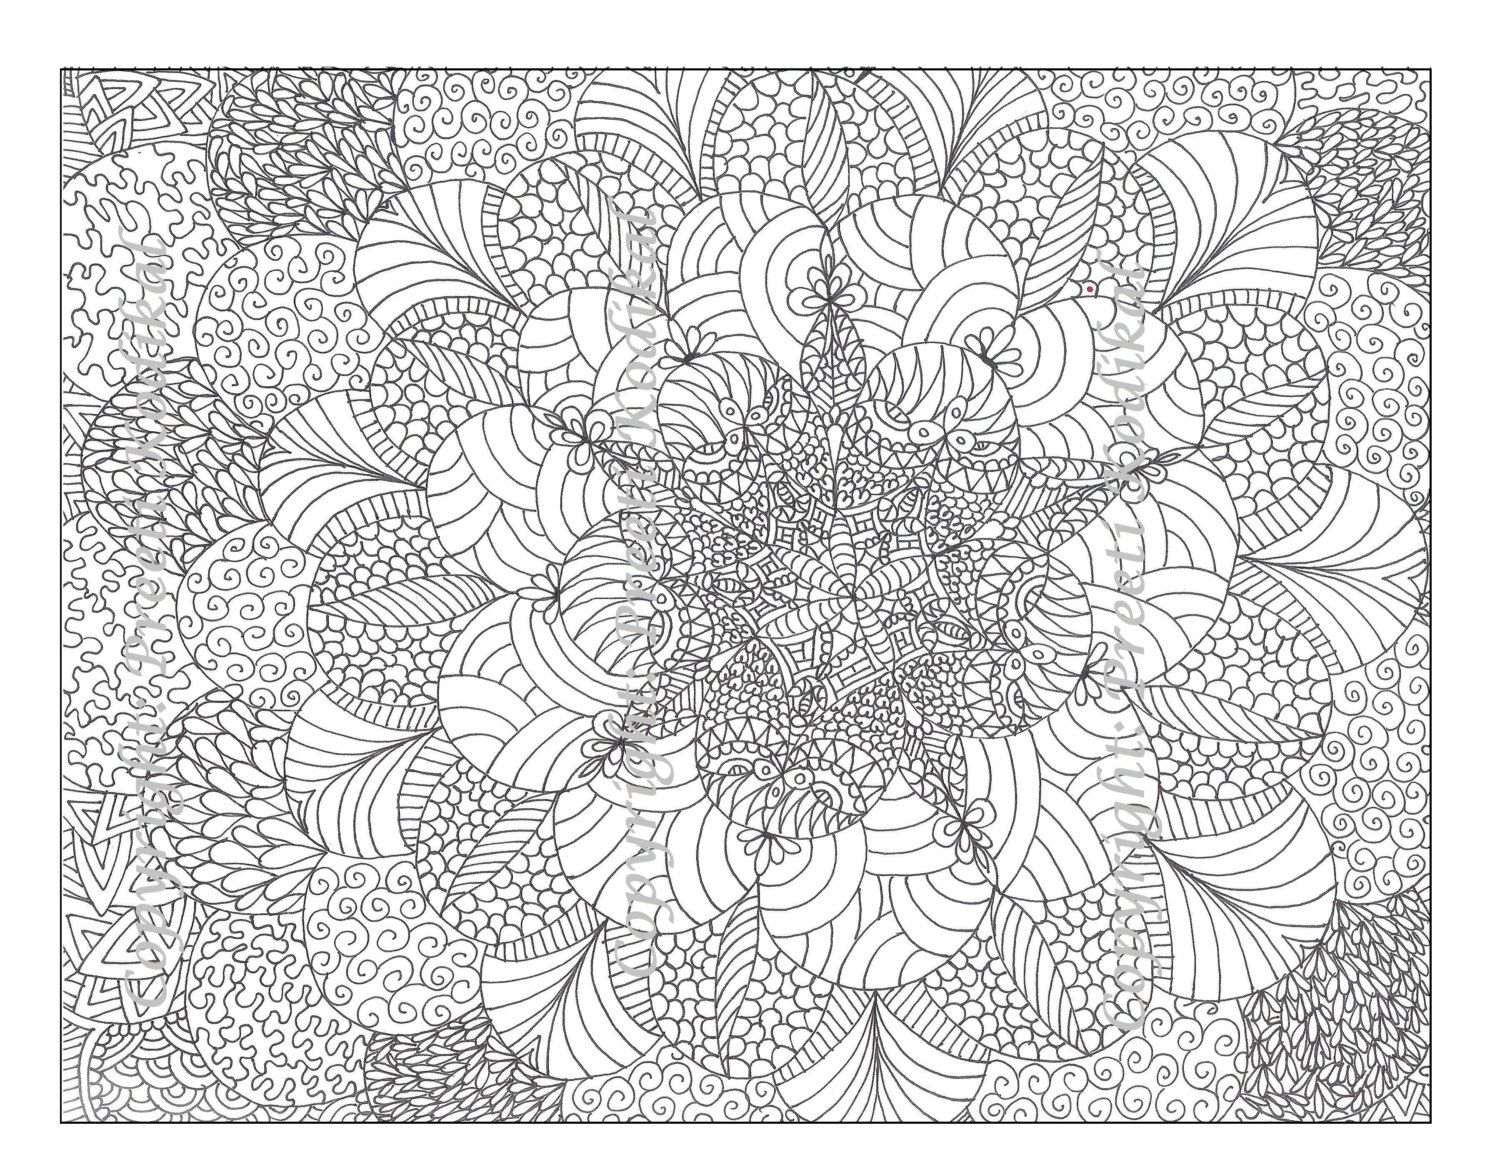 Hard mandala coloring pages for adults - Pen Illustration Printable Coloring Page Zentangle Inspired Henna Or Mehndi Inspired Indian Designs Like Mandala Abstract